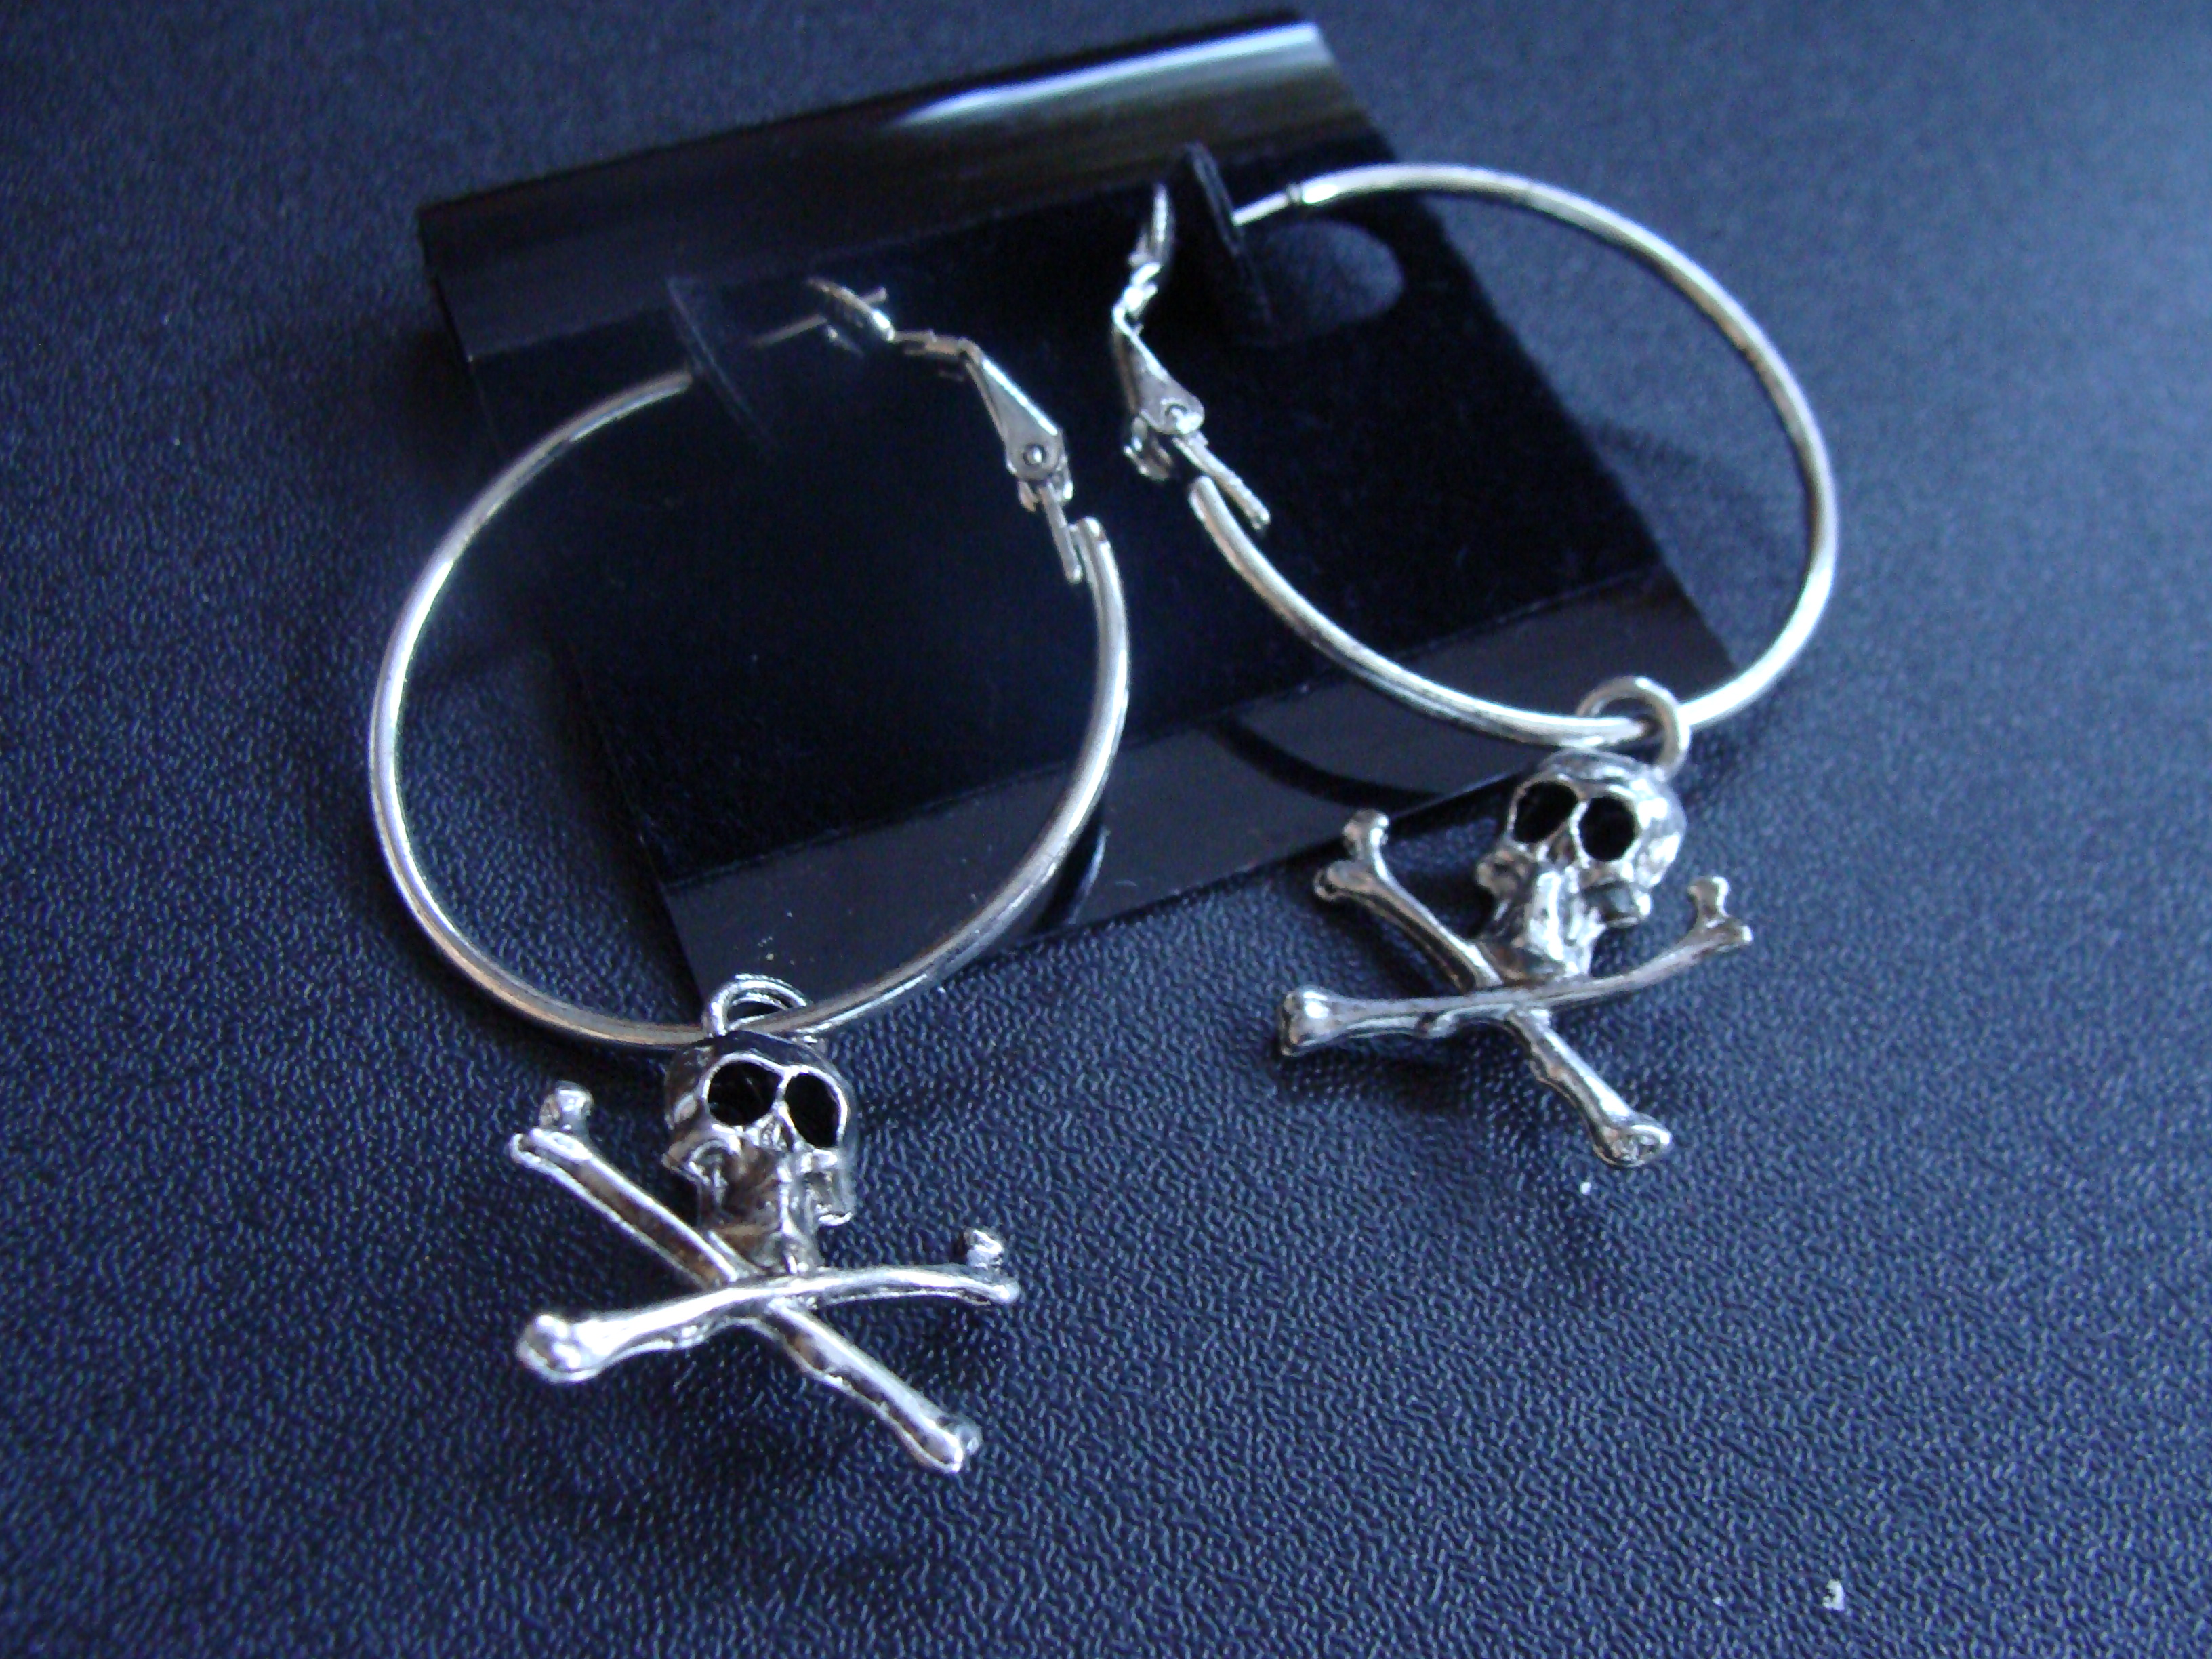 "#3555  7/8""  CRYPTICS TM SKULL & CROSSBONE EARRINGS ON A 1 1/4"" D HOOP BY POLLY PRODUCTS"